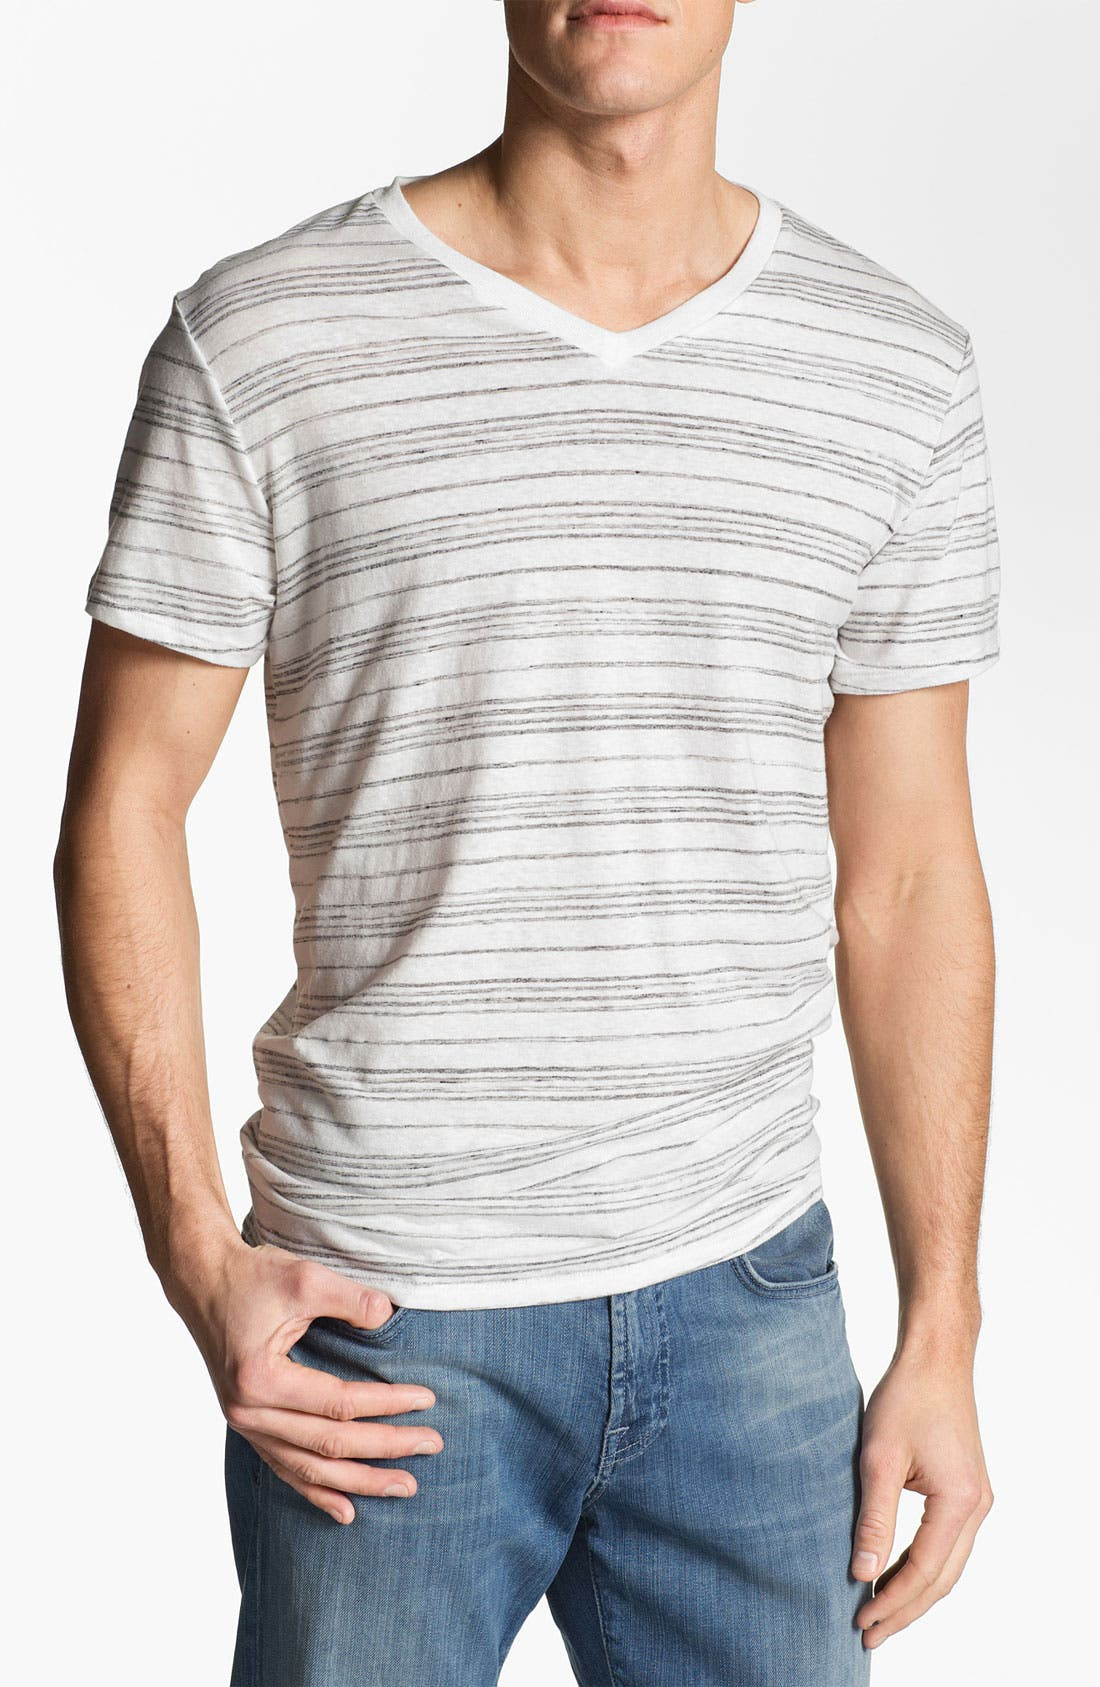 Alternate Image 1 Selected - Threads for Thought 'Crazy Stripe' V-Neck T-Shirt